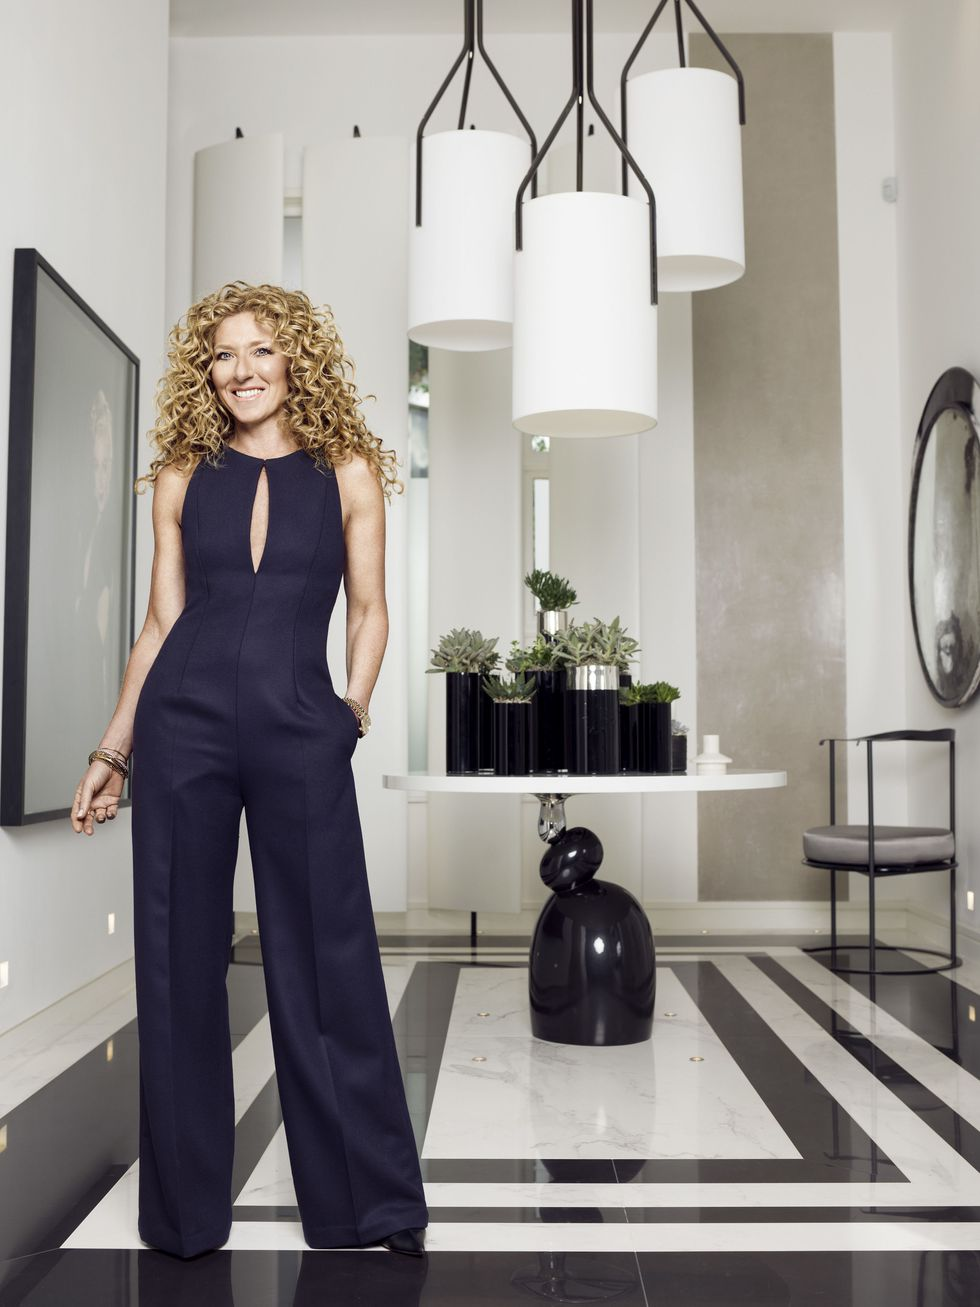 Famous interior designers - Kelly Hoppen - best interior designers in south africa - women empowerment famous interior designers Leading Ladies of Design: 20 Famous Interior Designers & Architects gallery 1487623713 kelly hoppen profile photo